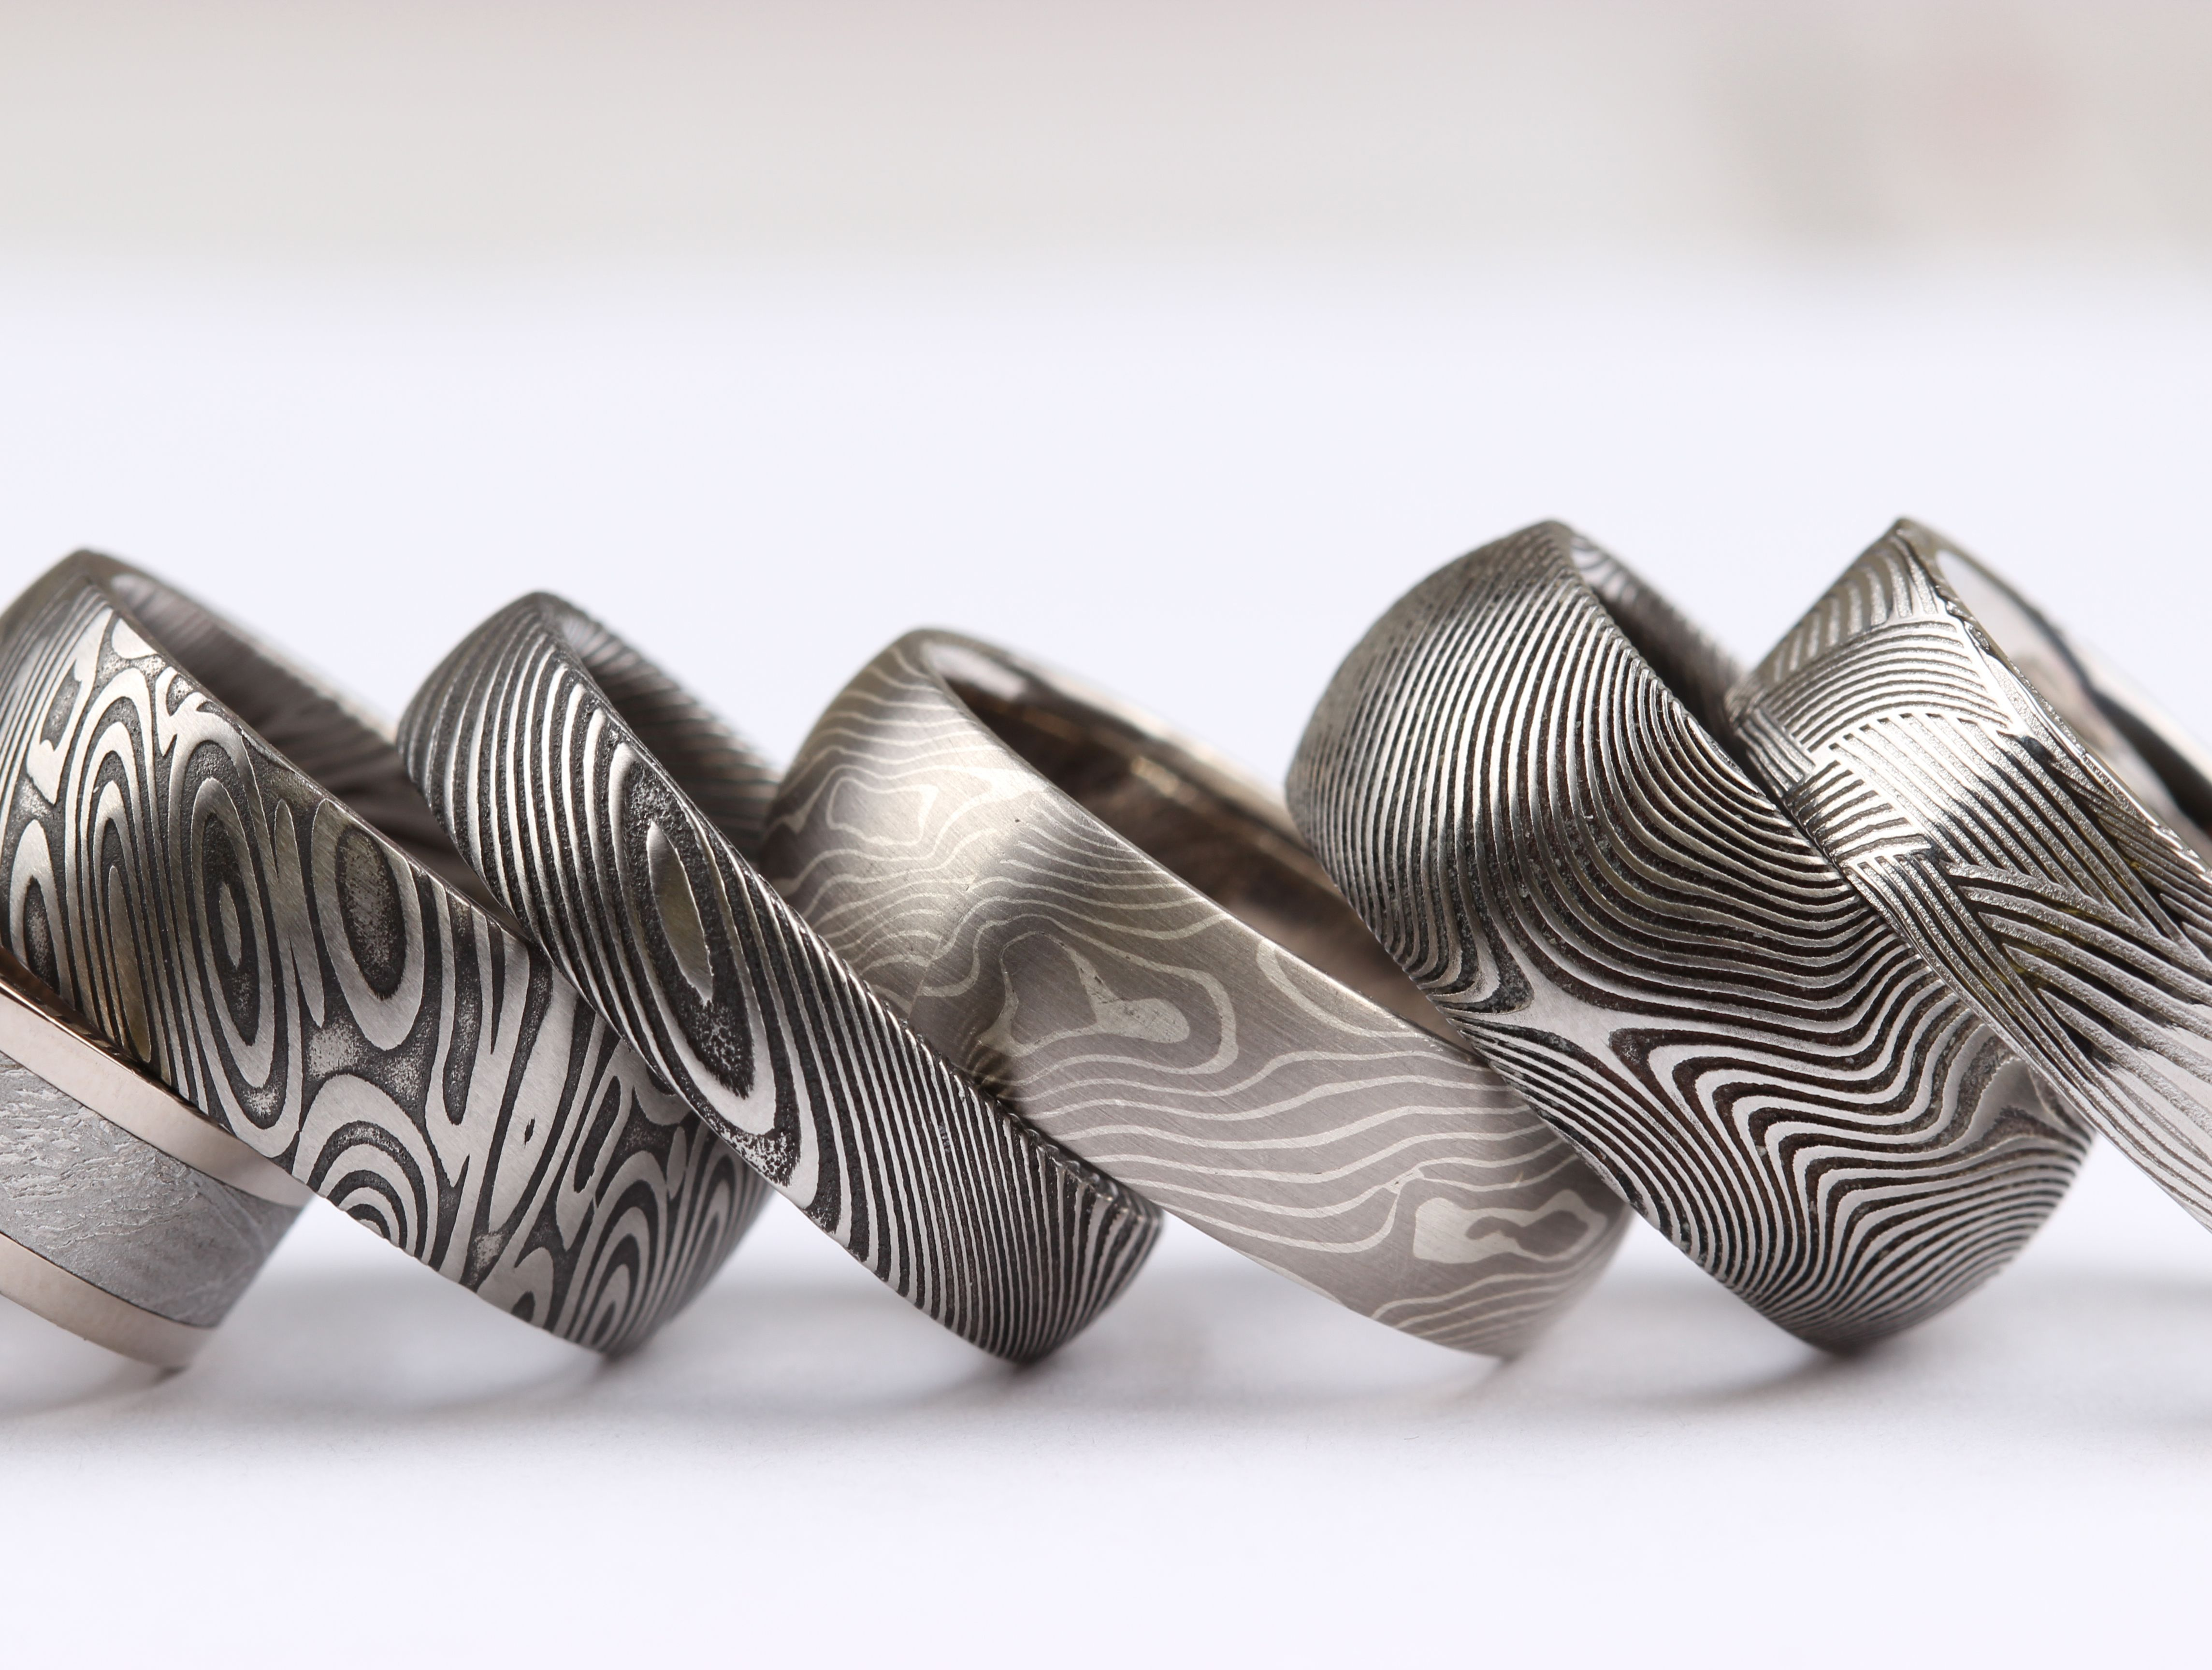 damascus steel wedding bands Damascus Steel Mokume Gane and Meteorite bands By Chris Ploof